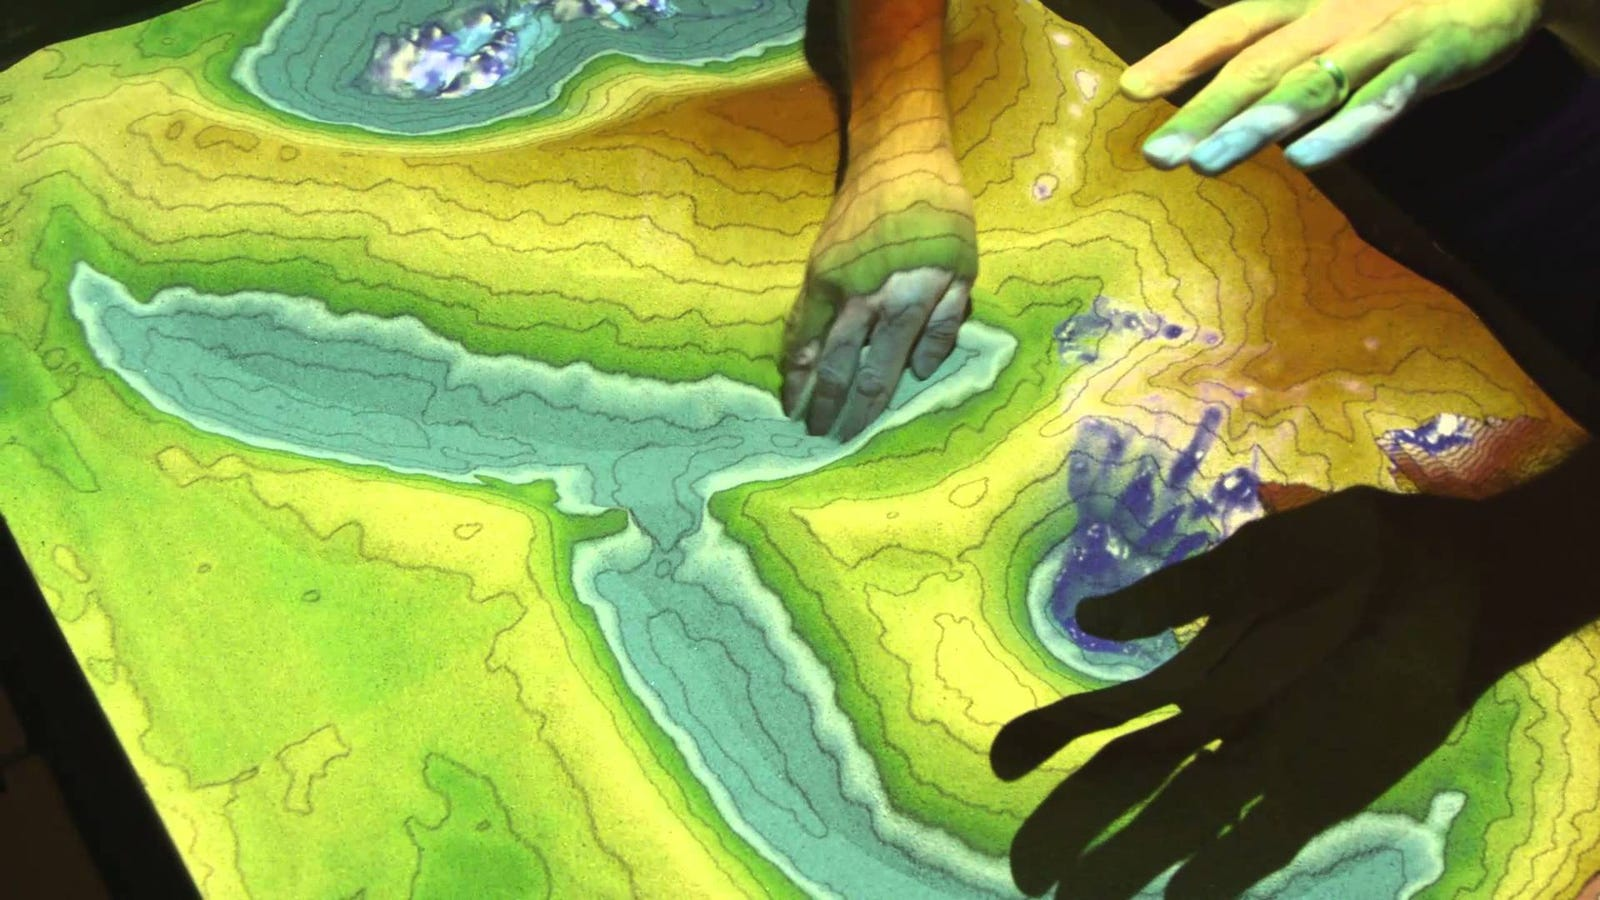 Build an Augmented Reality Sandbox with Real-Time Topography